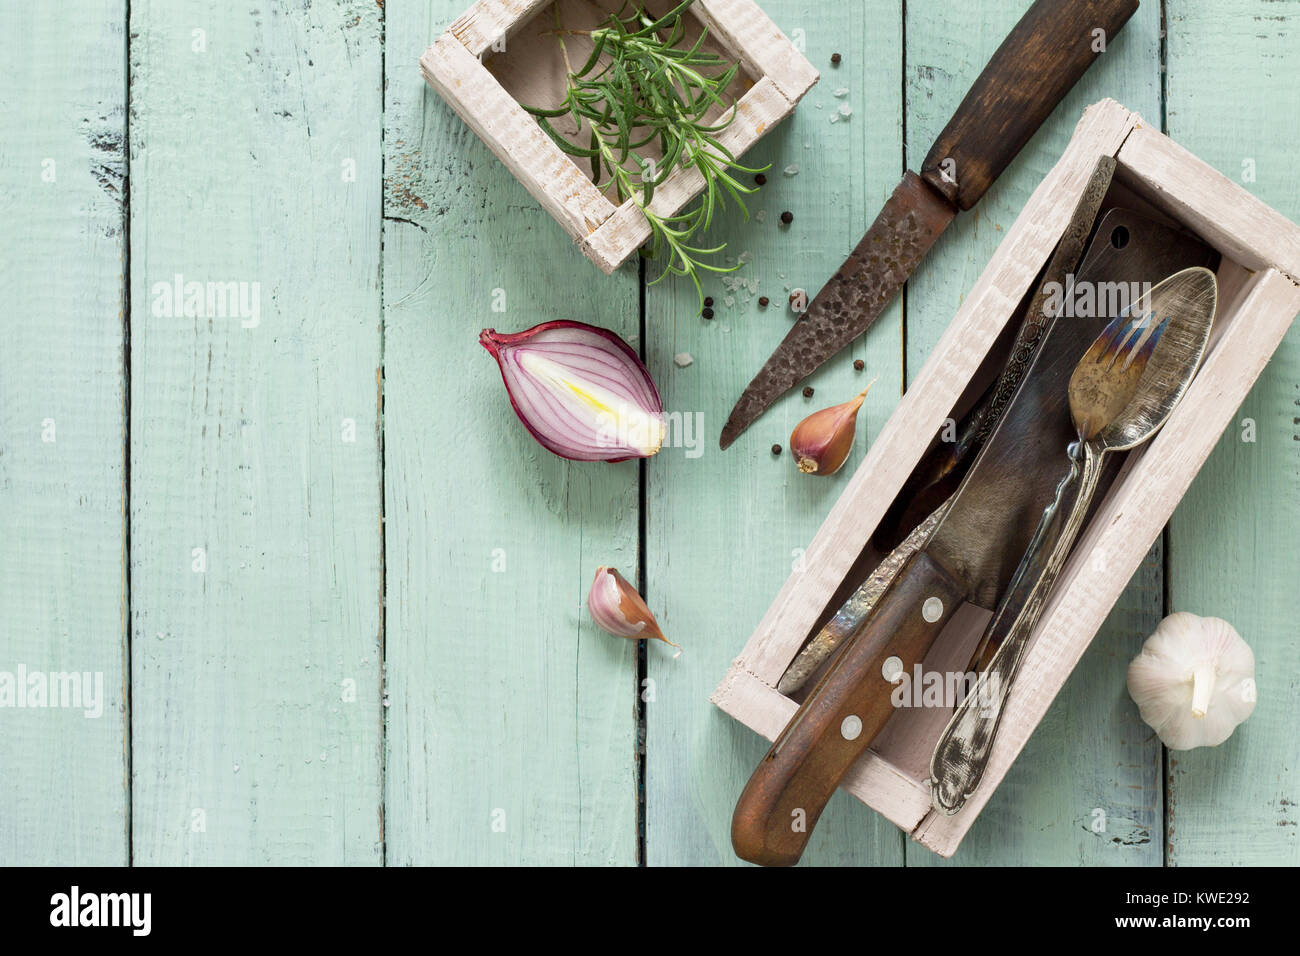 Vintage Kitchen Utensils Stock Photos & Vintage Kitchen Utensils ...